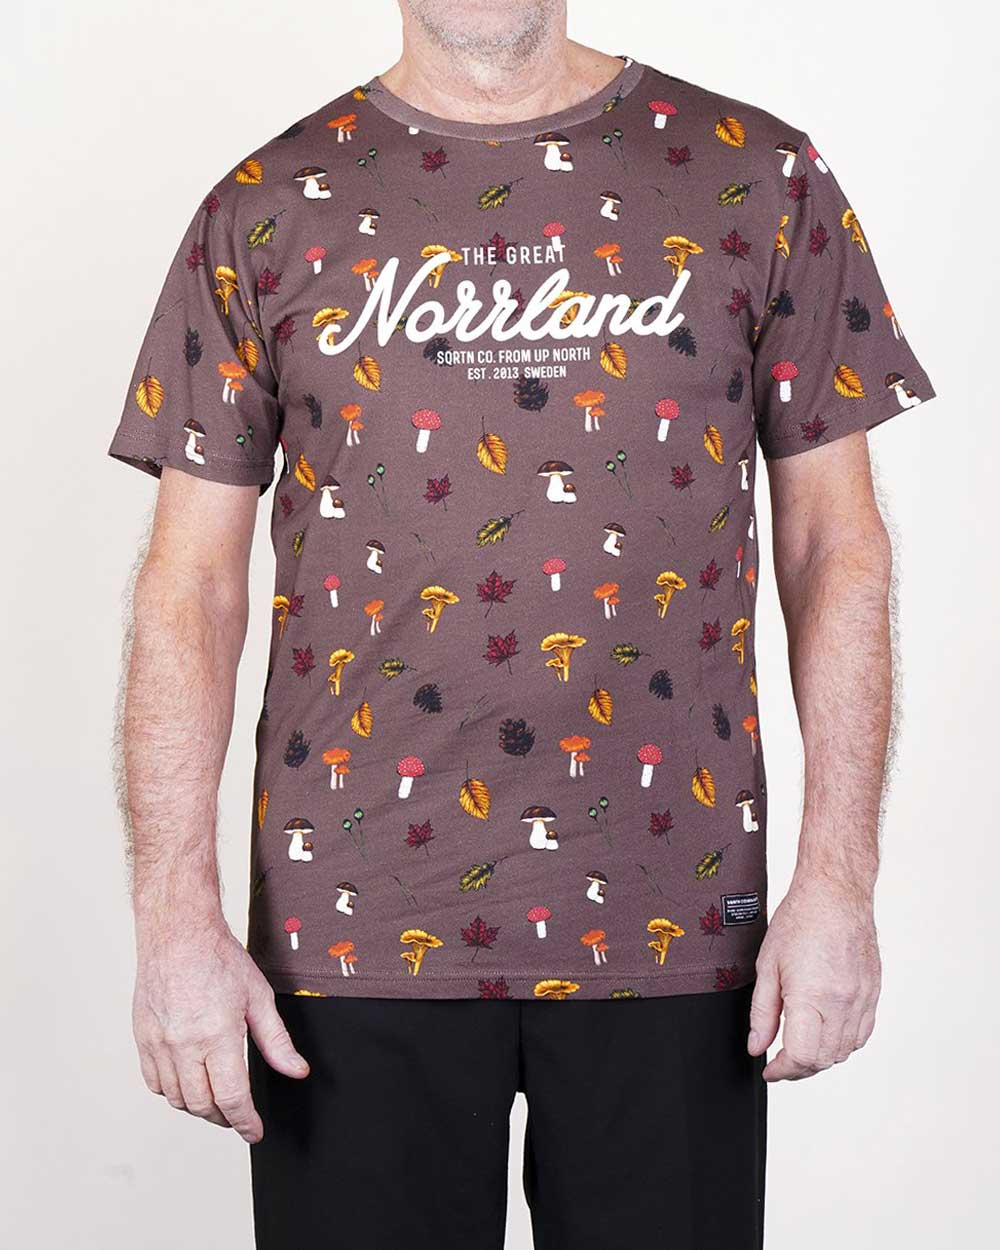 The Great Norrland Shroom Brun T Shirt